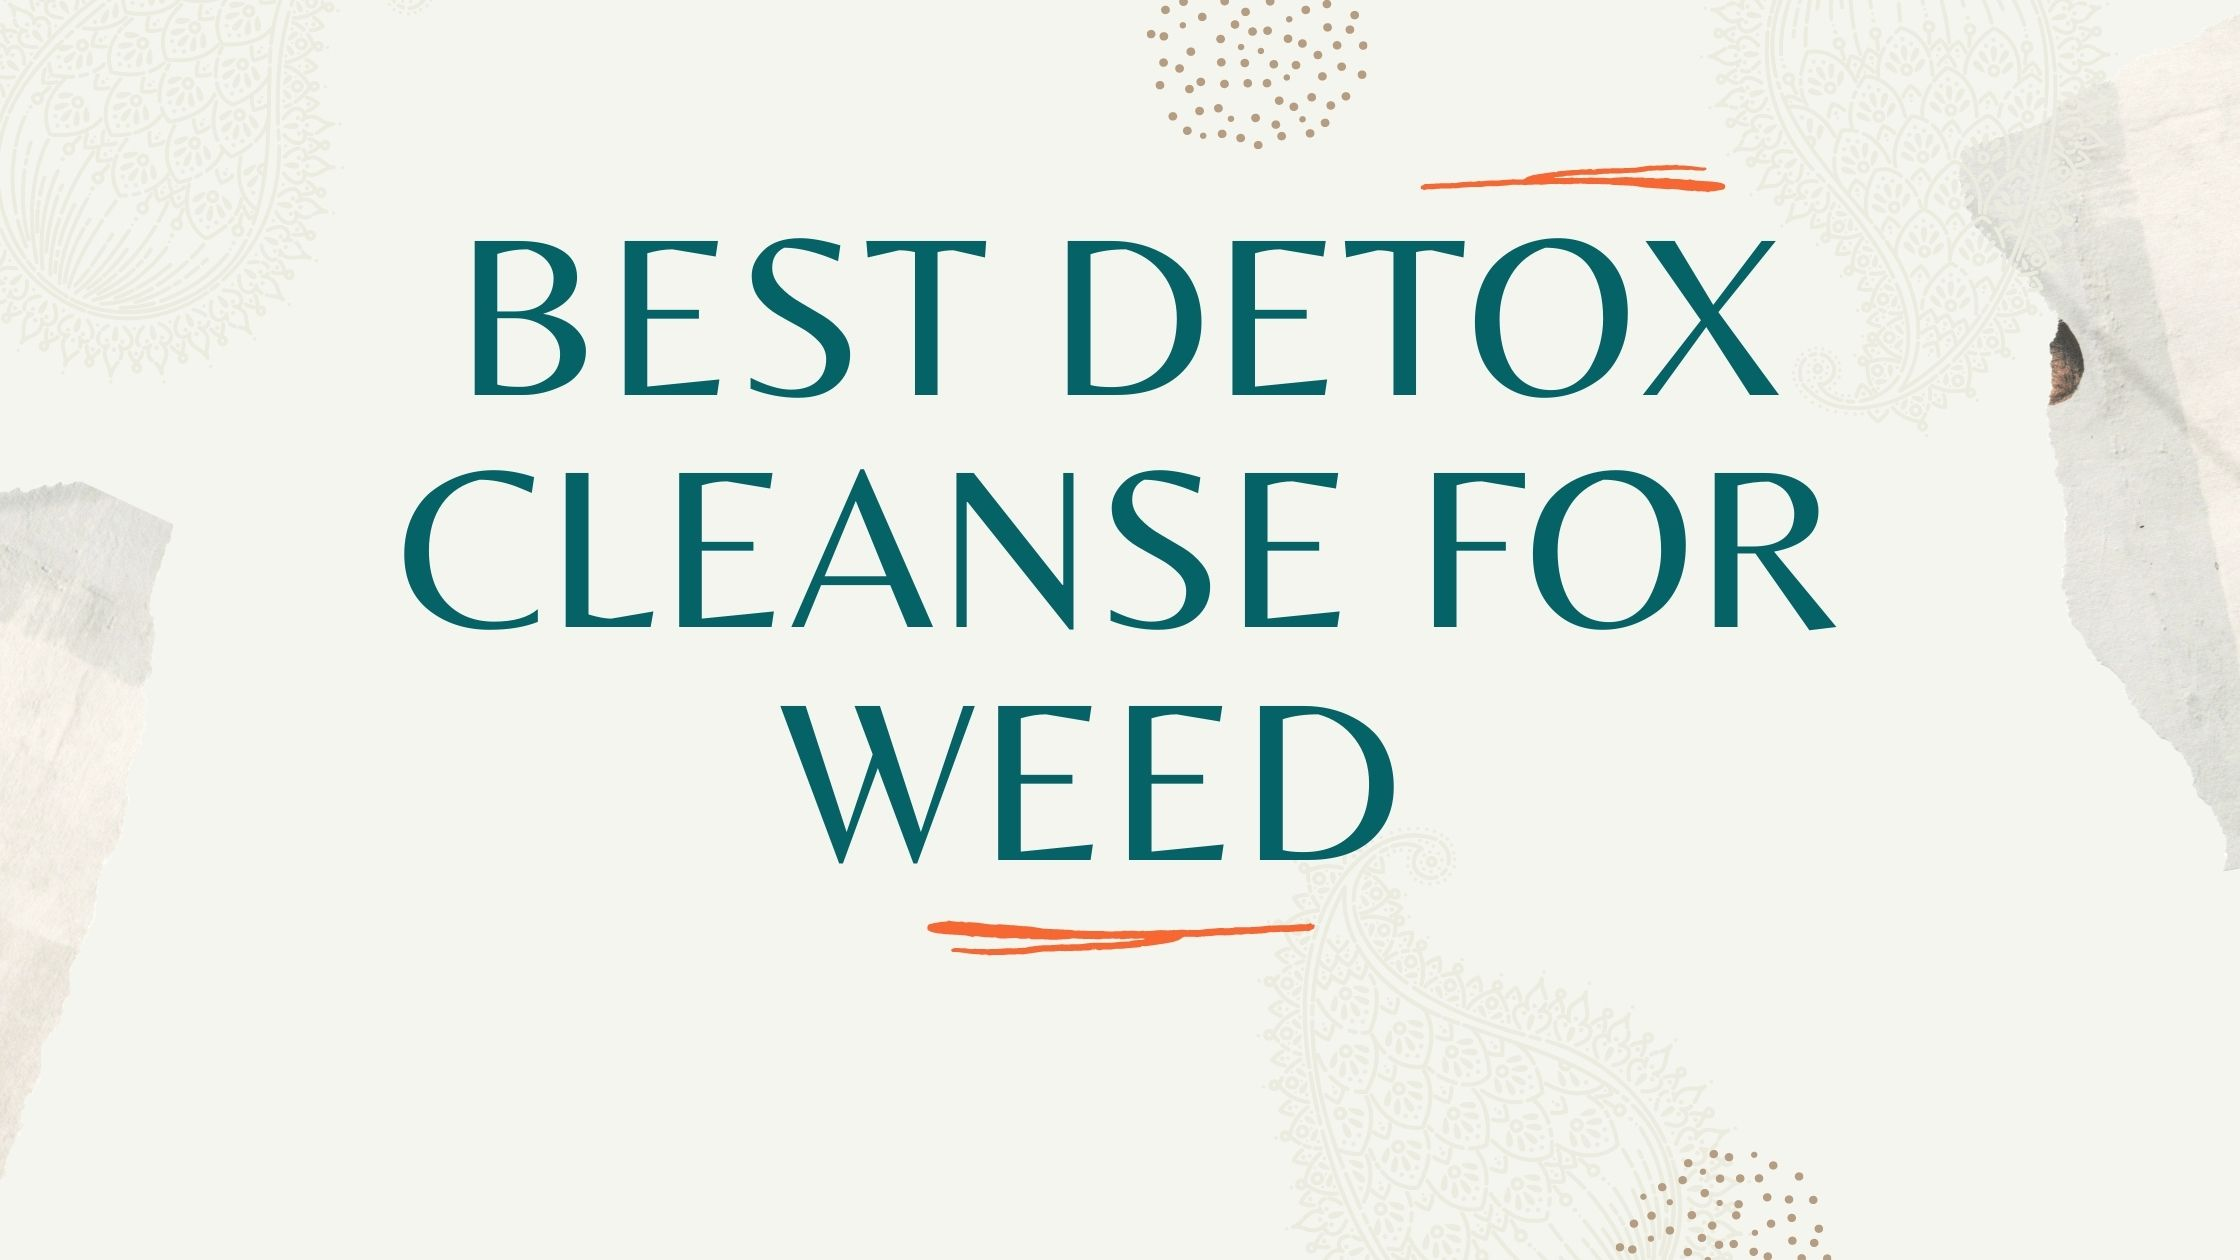 Best Detox Cleanse For Weed